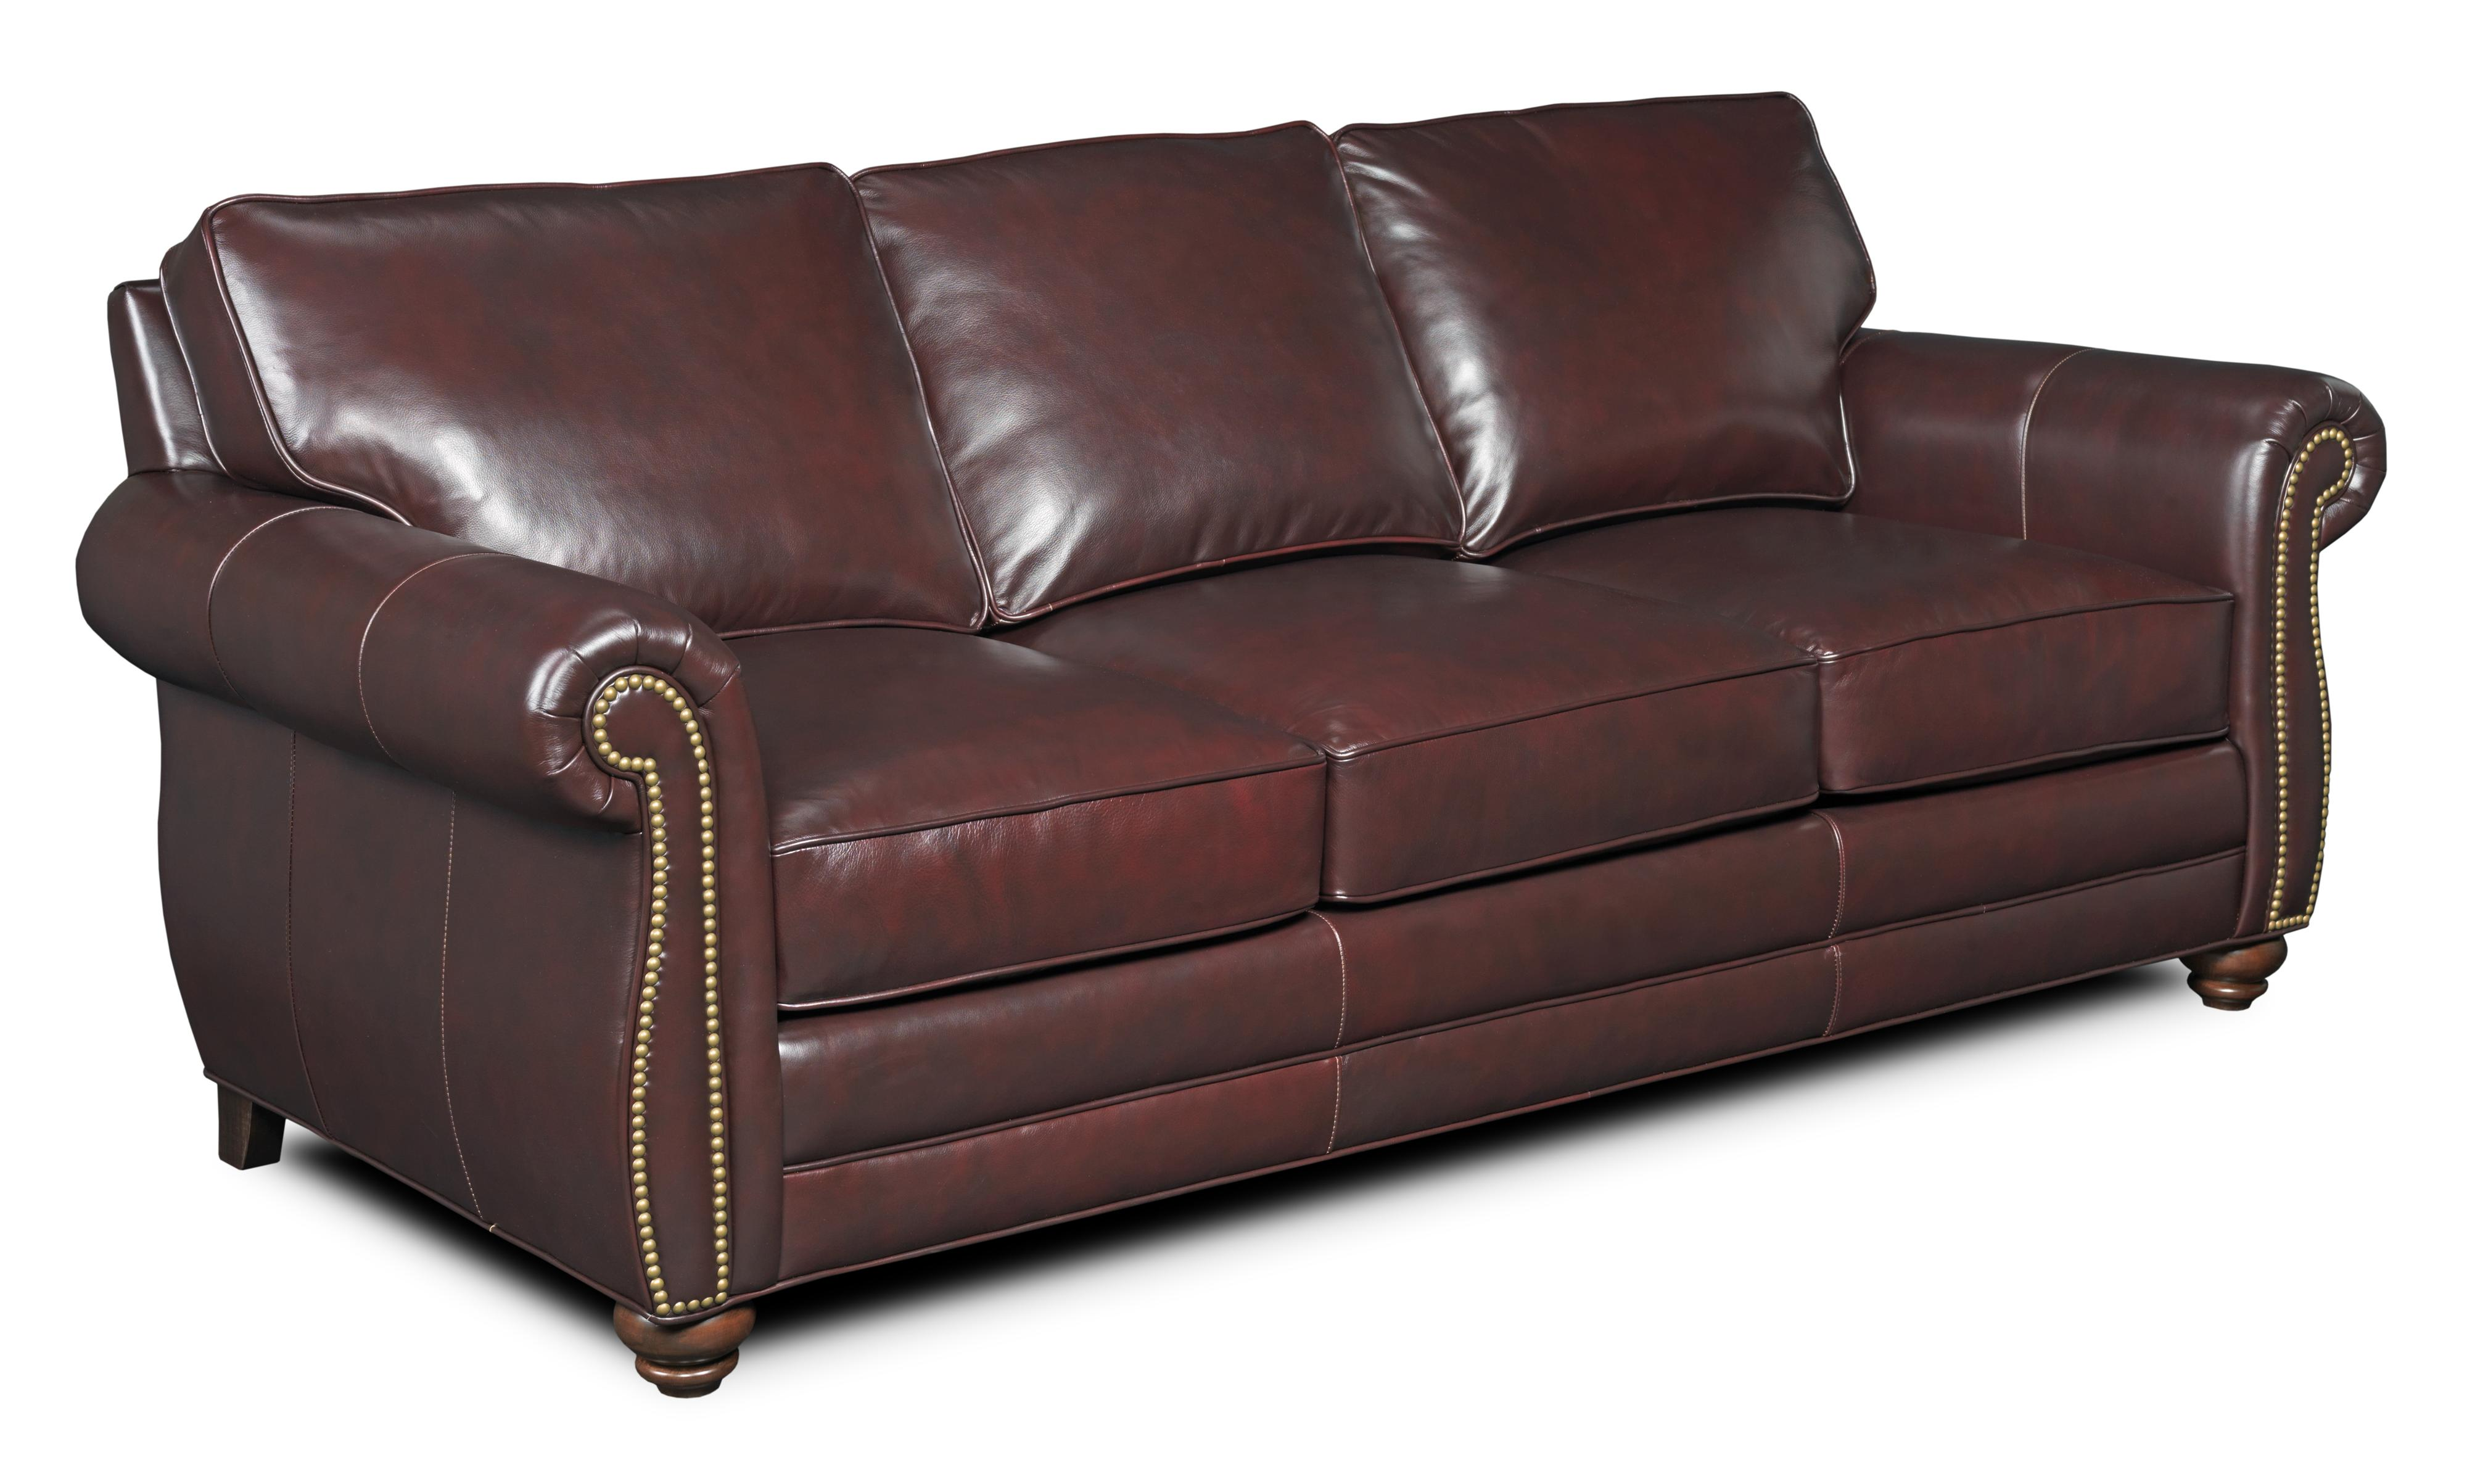 Nebo Traditional Leather Sofa With Turned Arms And Nail Head Trim By Bradington  Young